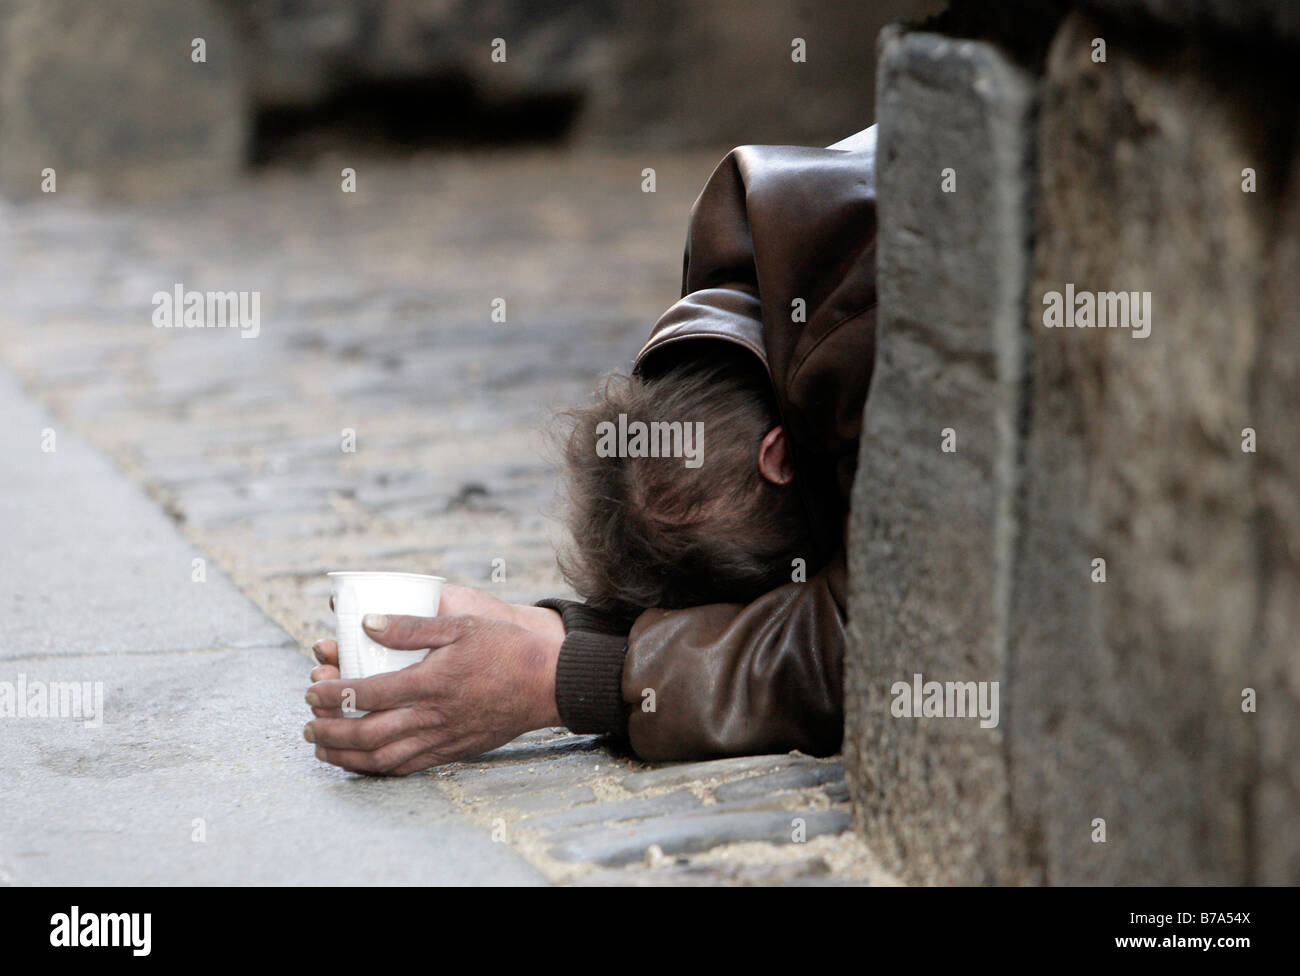 Beggar, Prague, Czech Republic, Europe - Stock Image